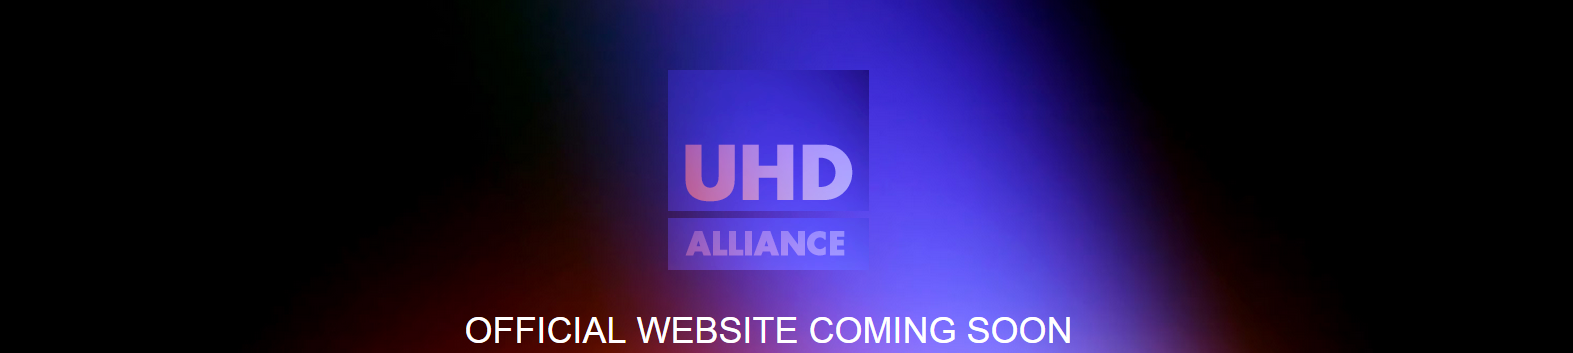 uhd-alliance